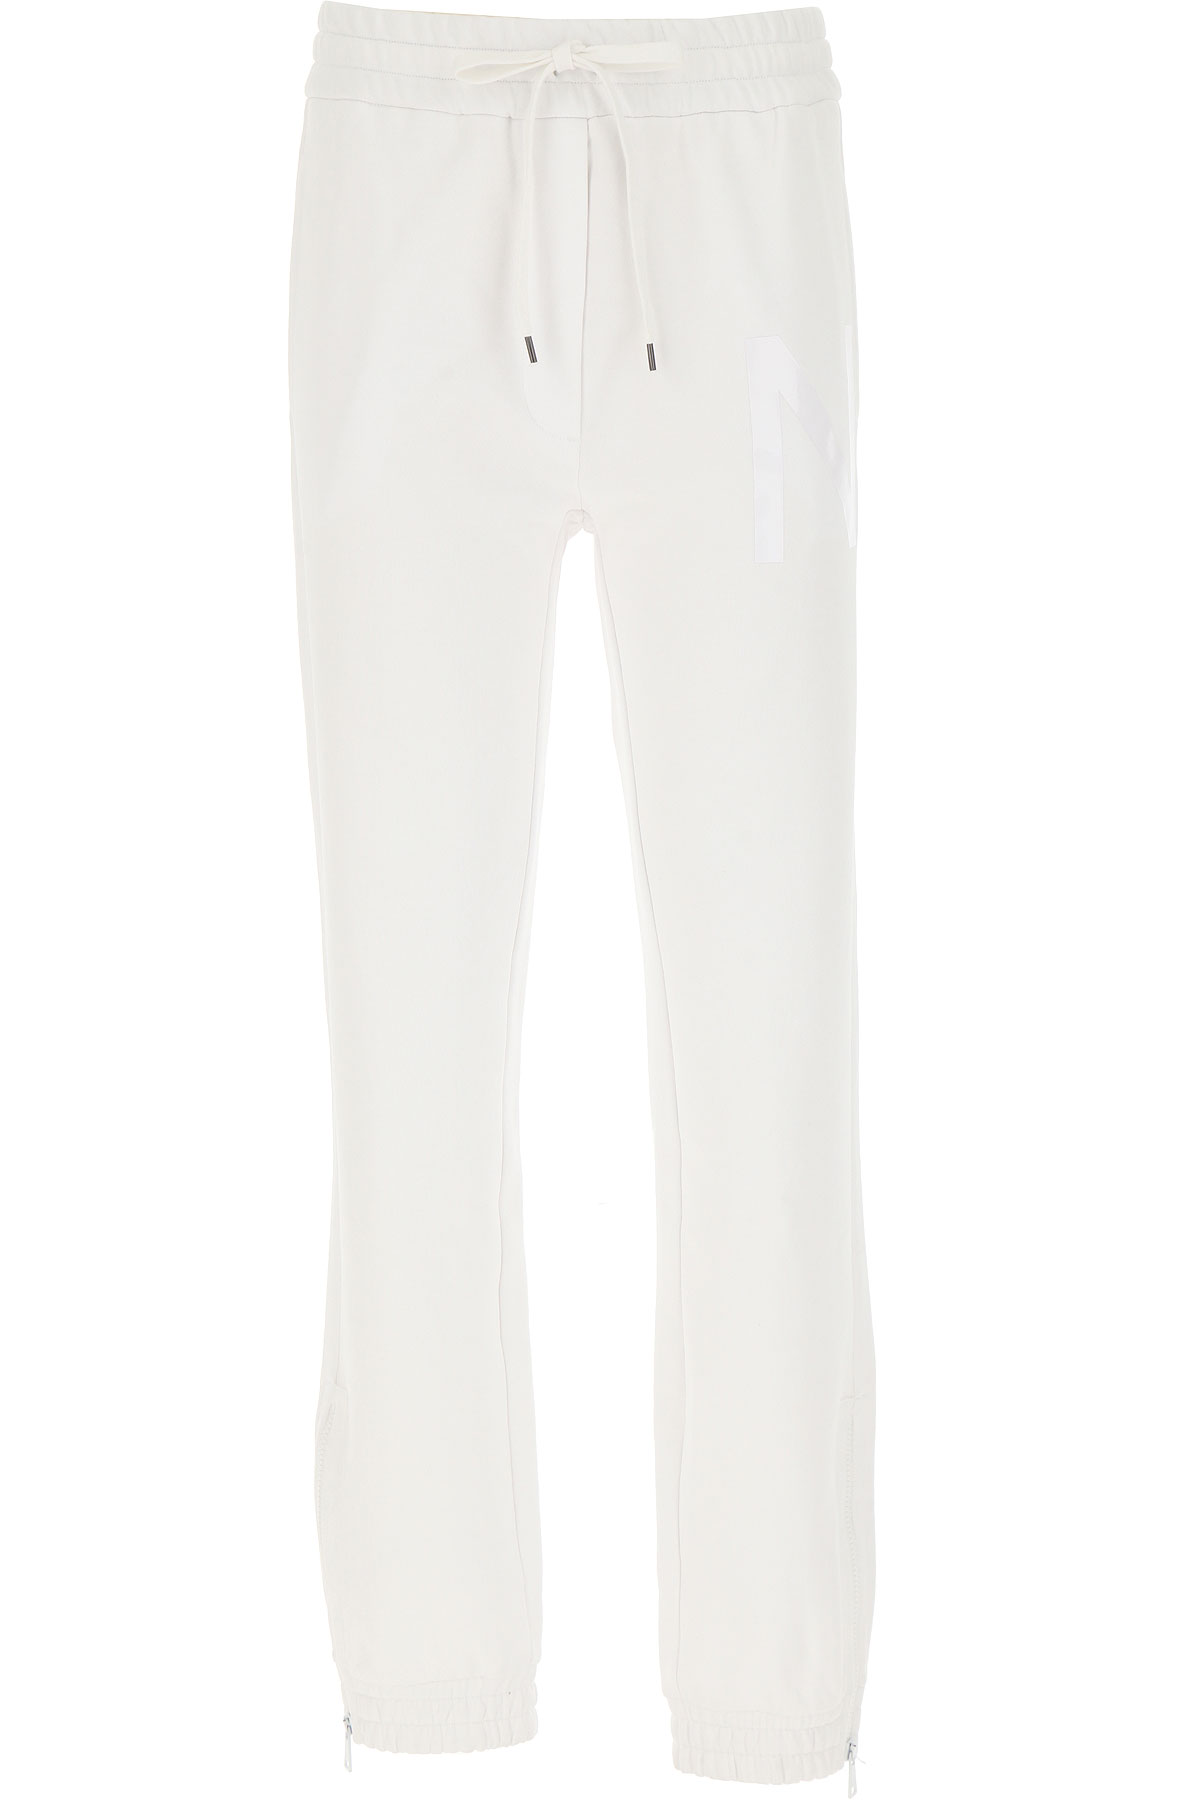 NO 21 Pants for Women On Sale, White, Cotton, 2019, 26 28